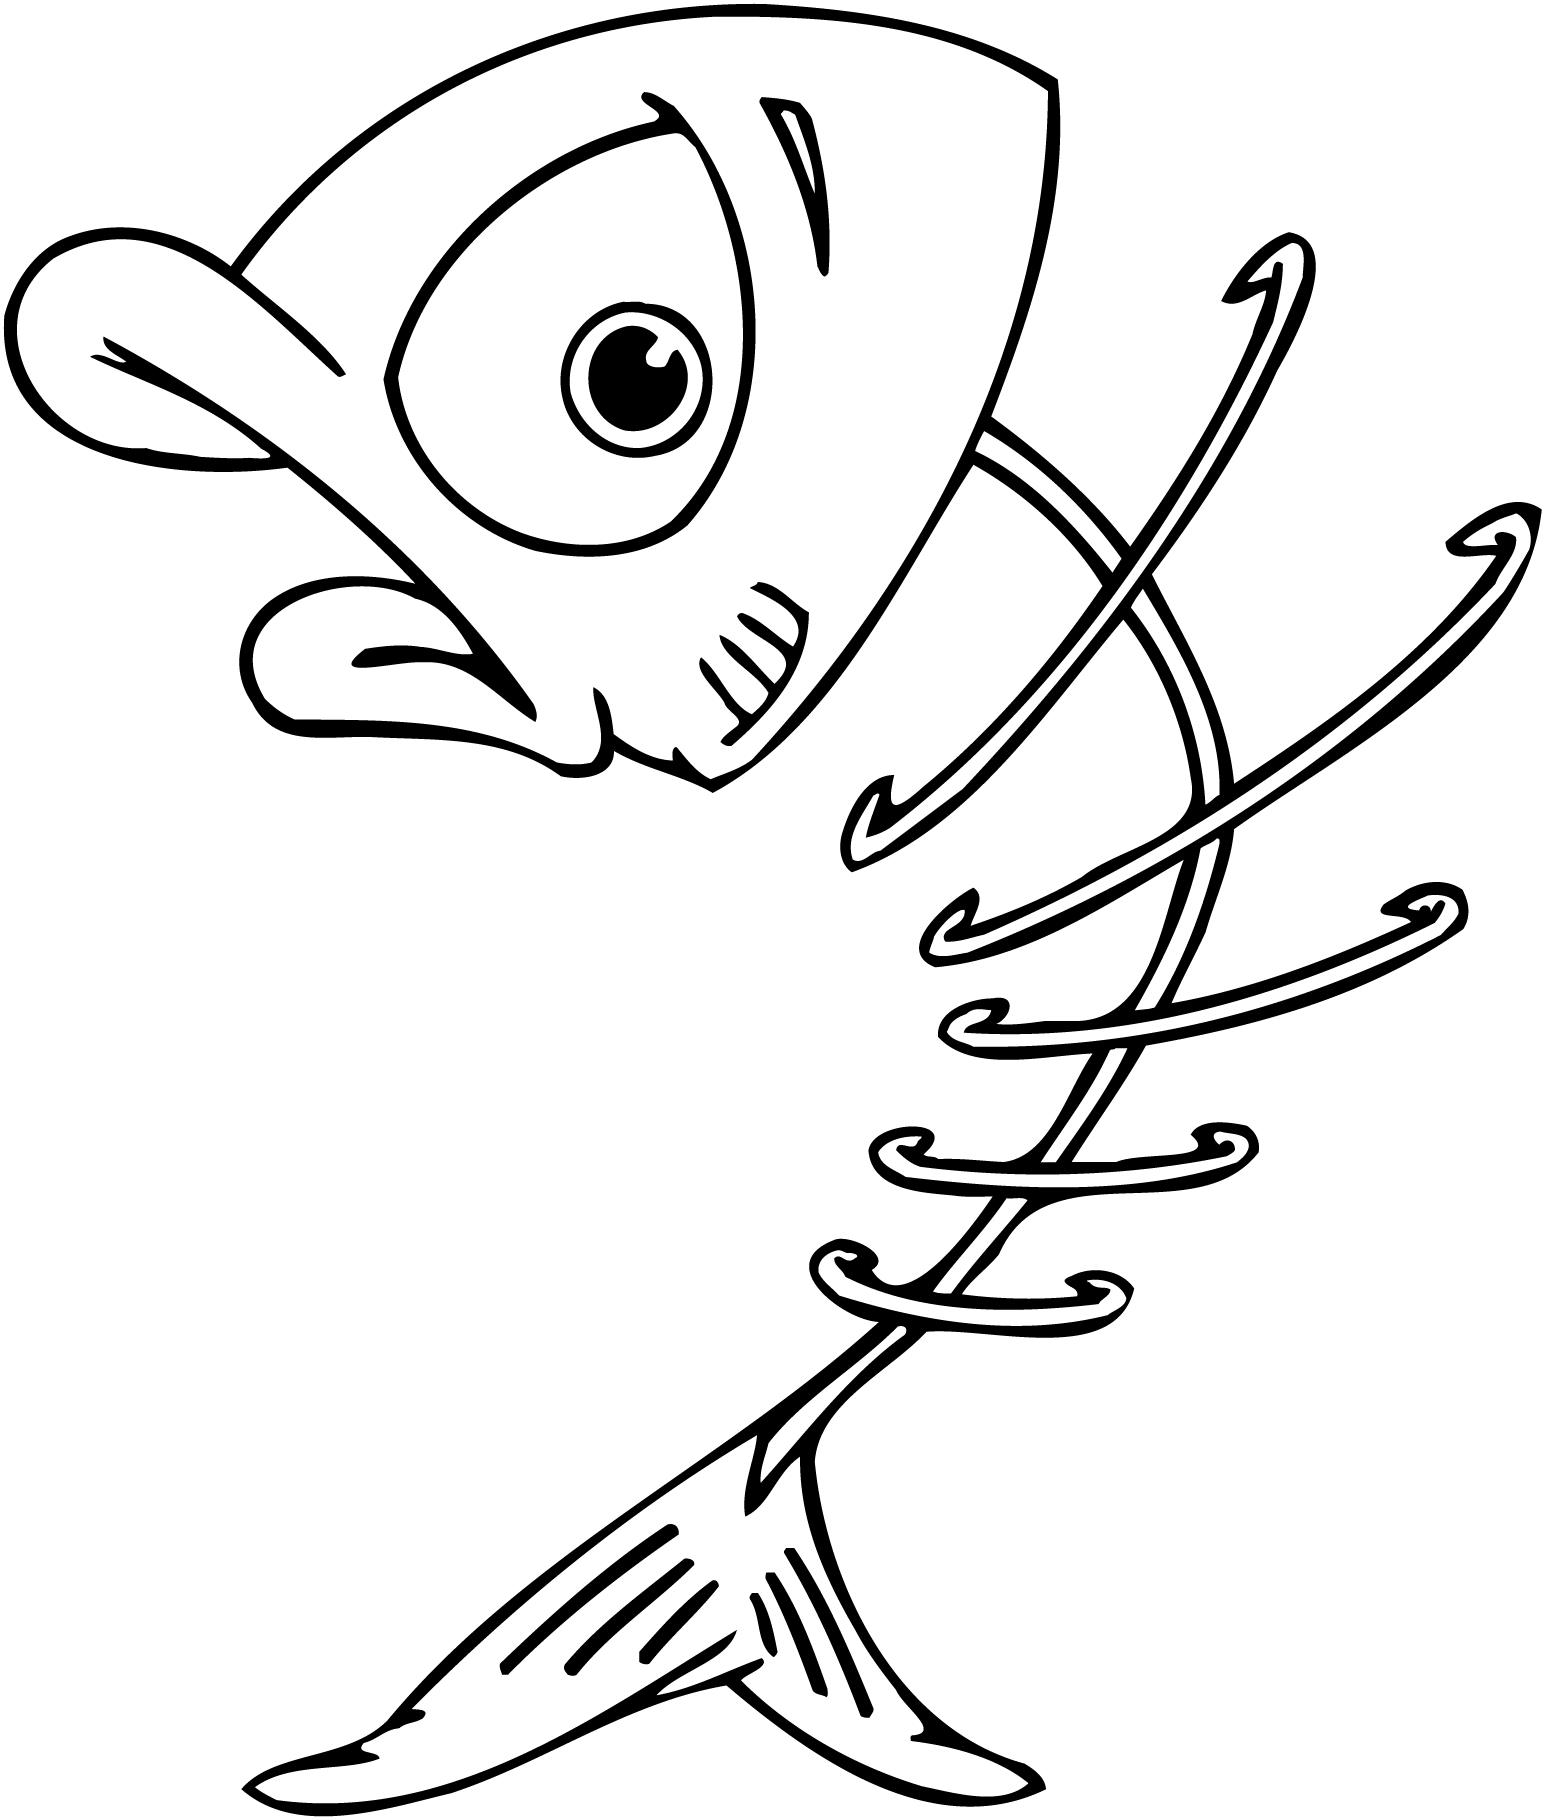 coloring page of catfish collections